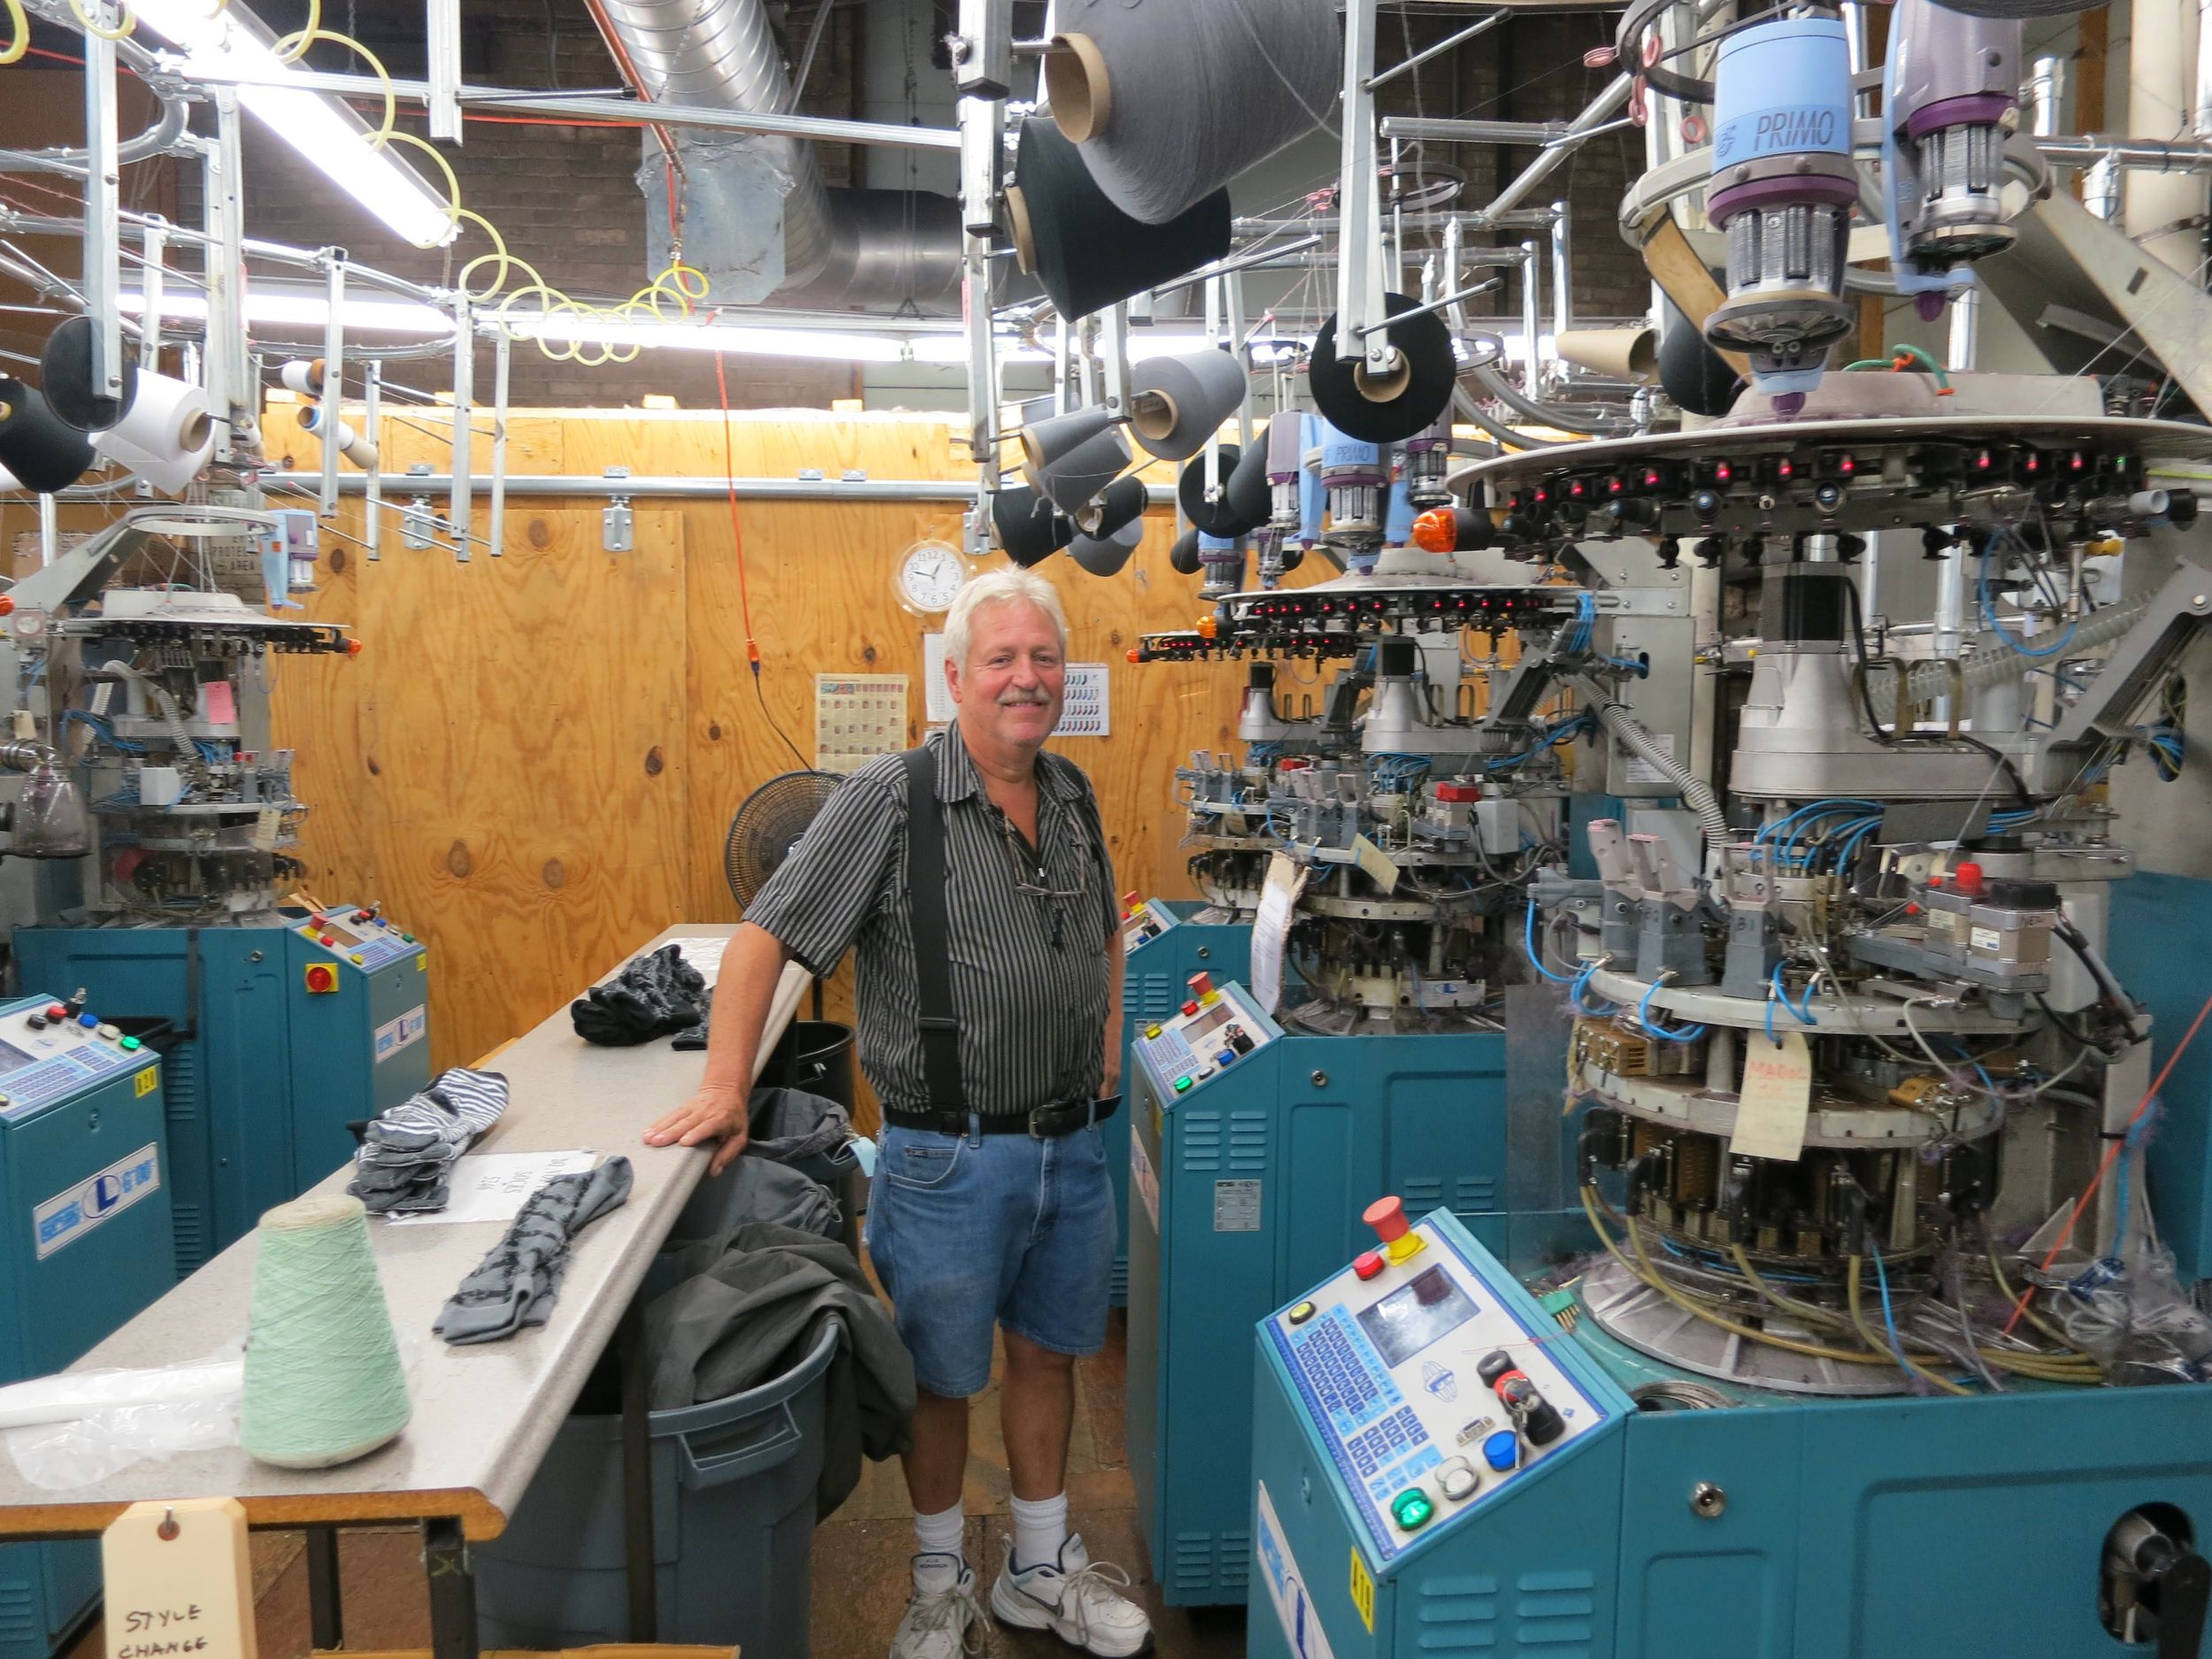 Terry, sock genius, in front of the knitting machines used for THIS NIGHT's socks